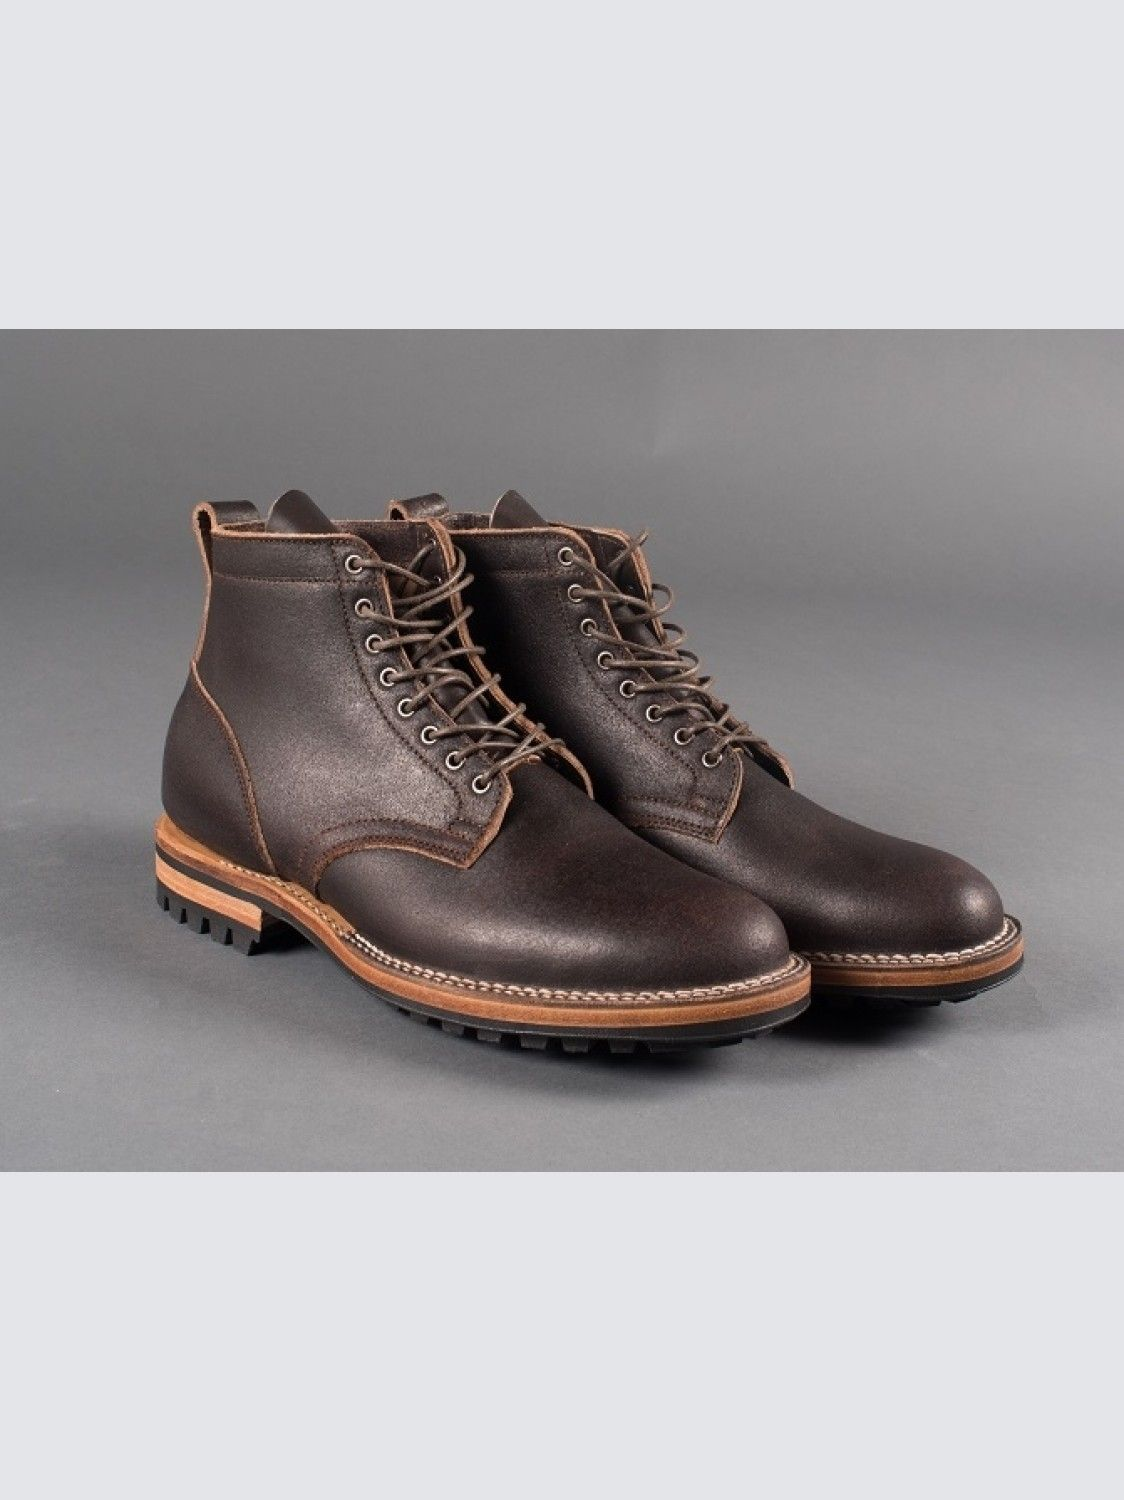 Viberg Service Boot Brown Waxed Flesh - Commando  8fe454c4729